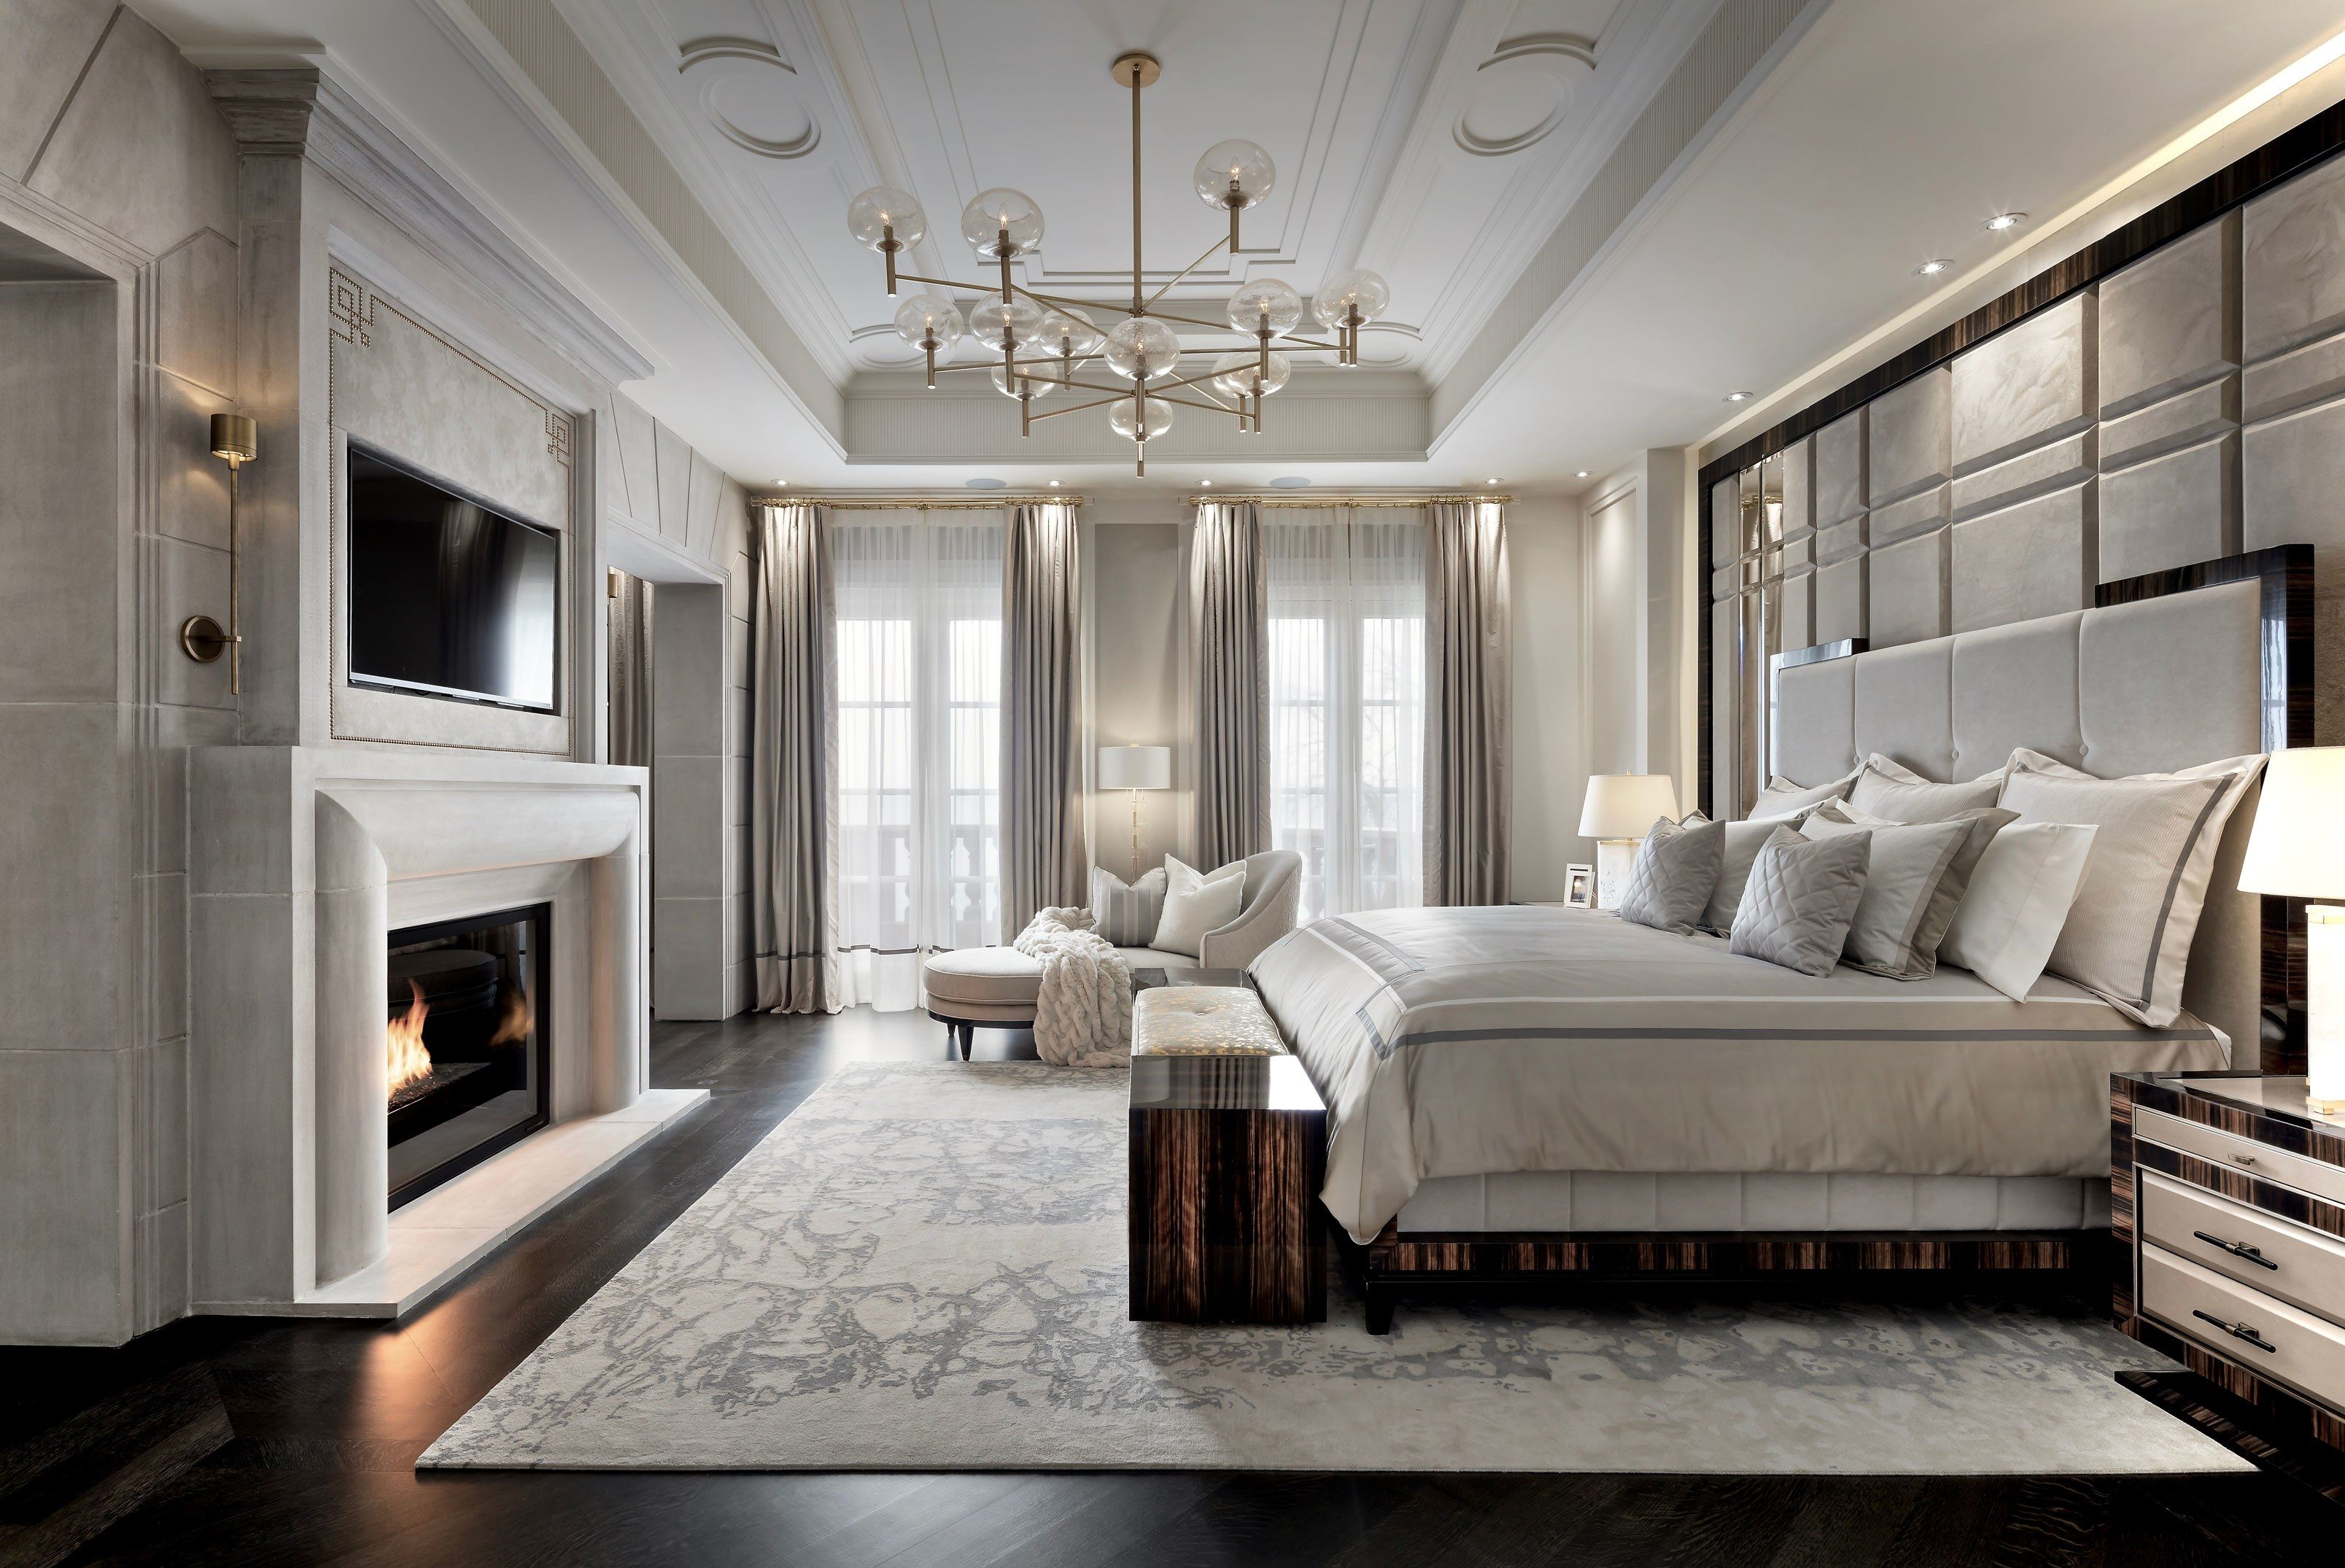 An Ultra Luxurious 50 Million Canadian Home That S Anything But Rustic Luxurious Bedrooms Master Bedrooms Decor Luxury Bedroom Design Luxury master bedroom photo